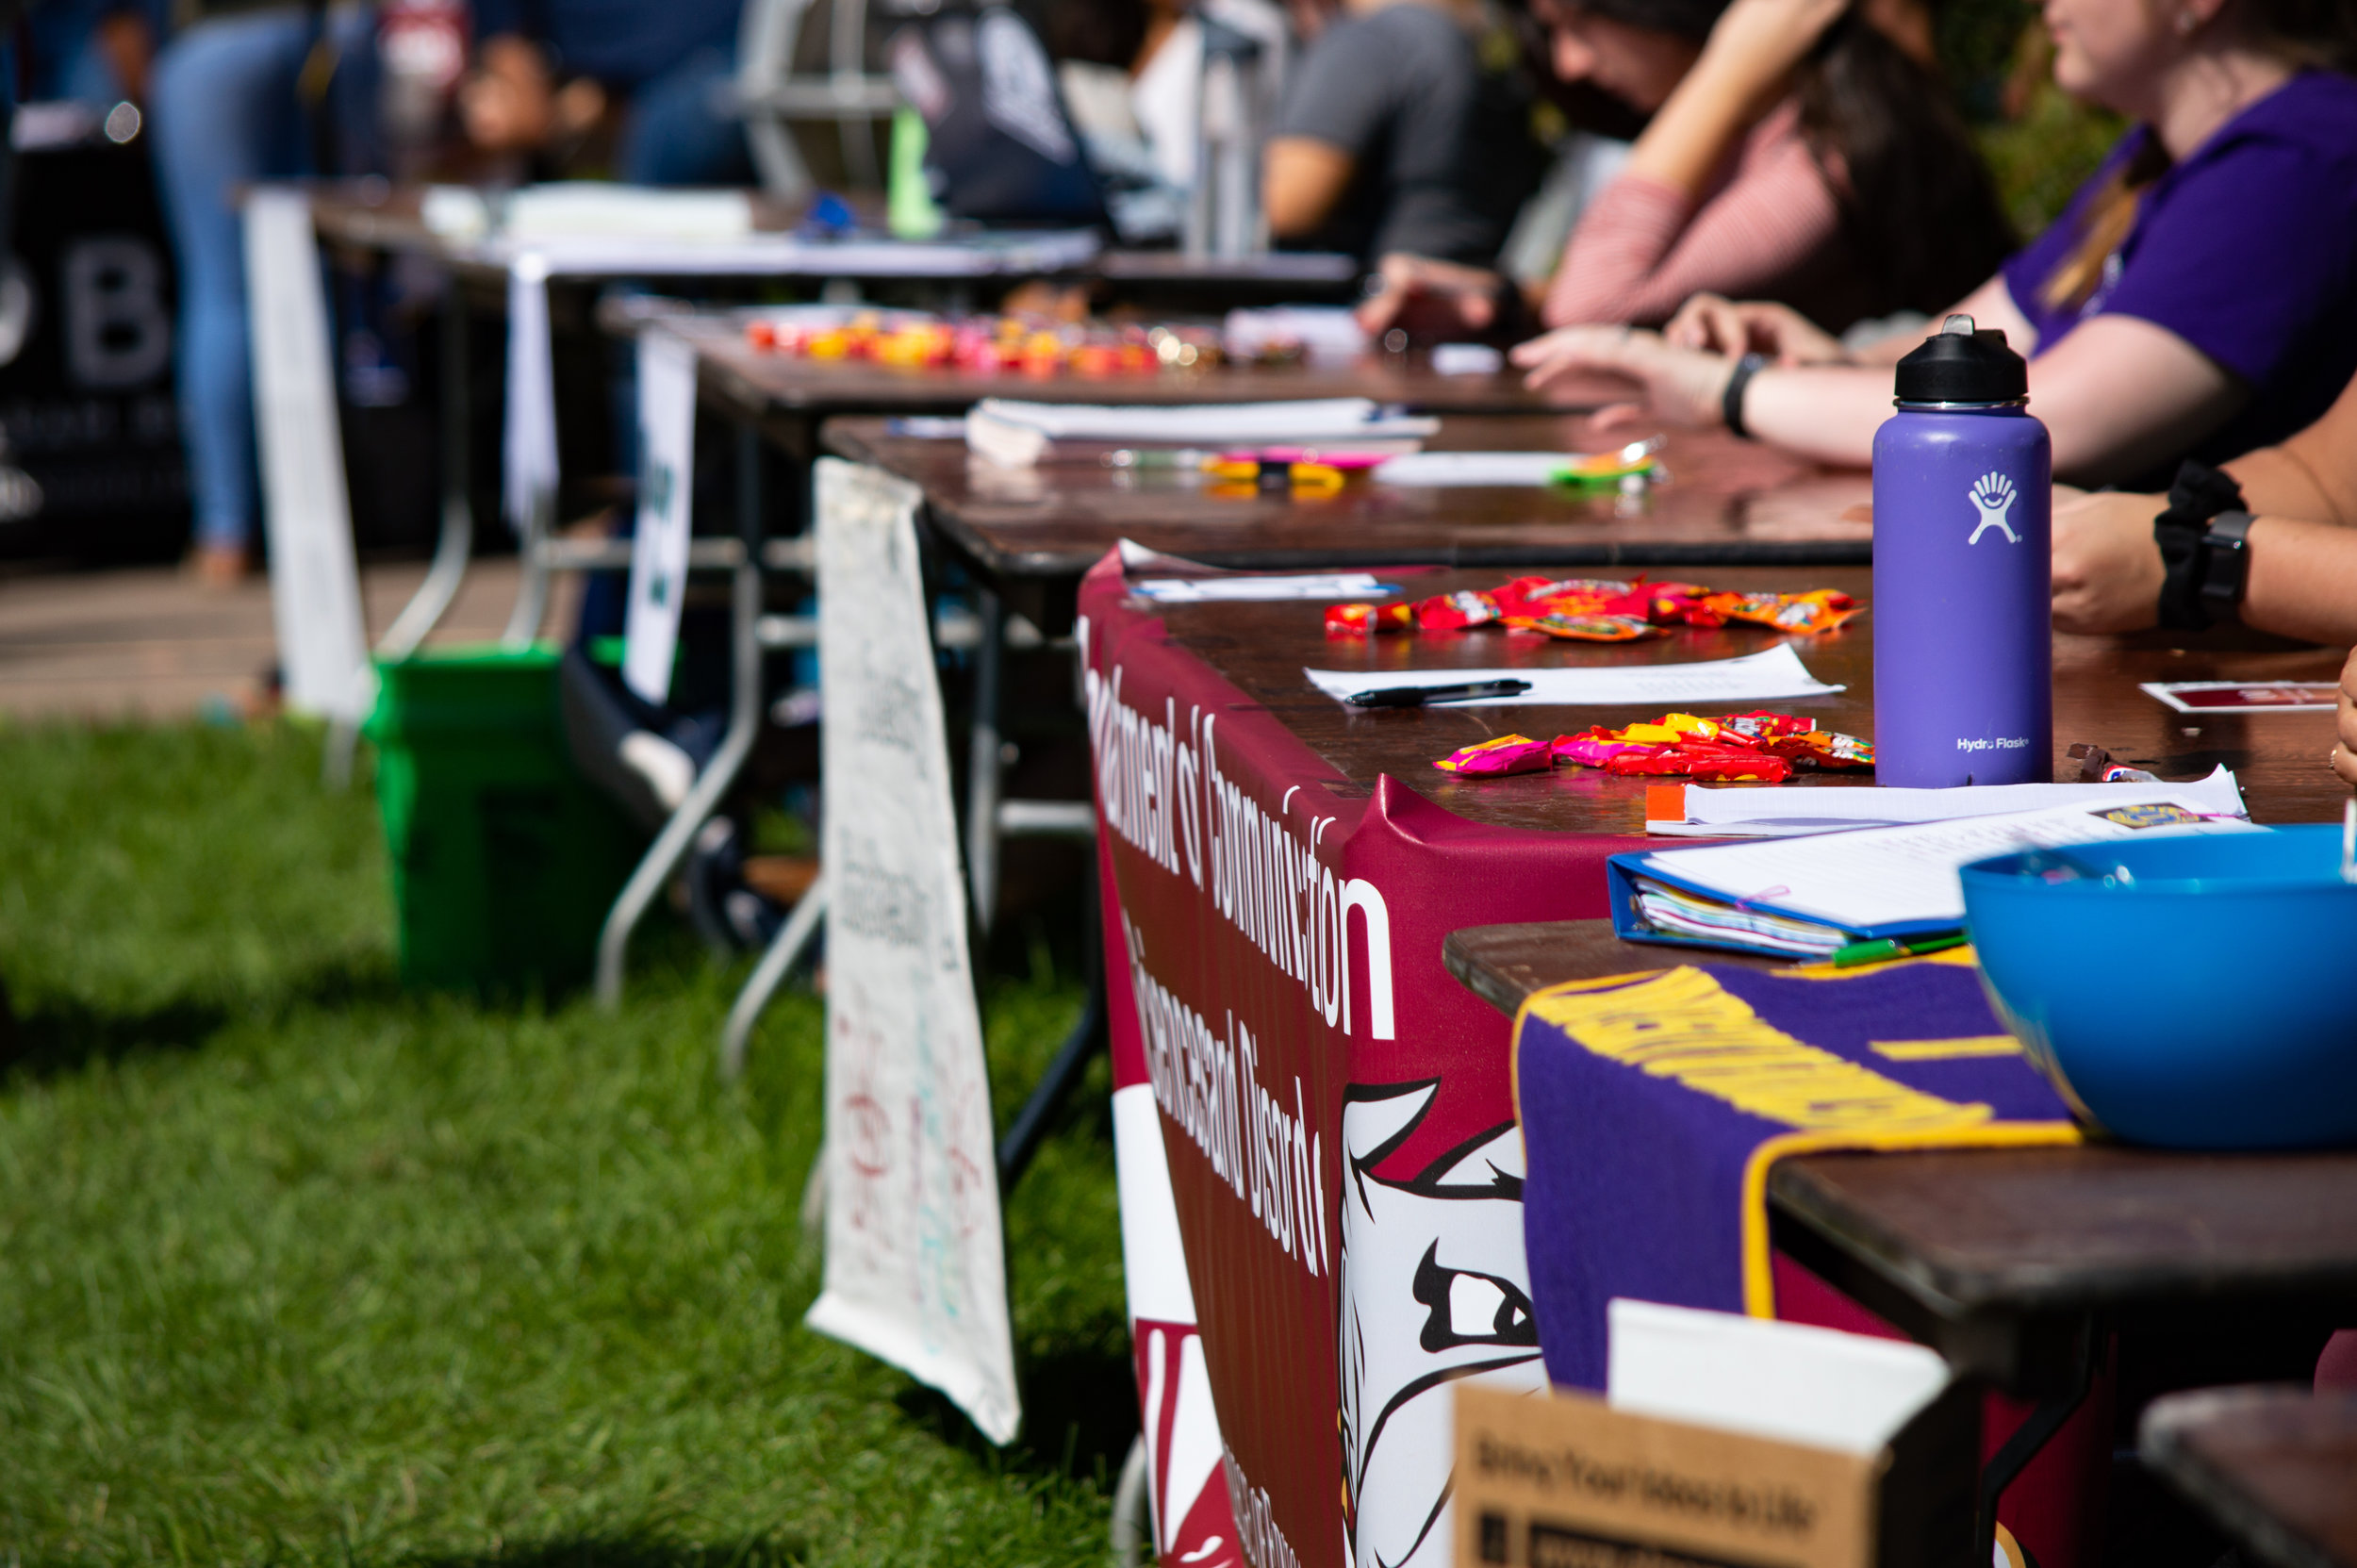 Students gathered on the Kirby Terrace last Thursday, Sept. 6 for the annual Activities Fair. Photo by Jake Barnard